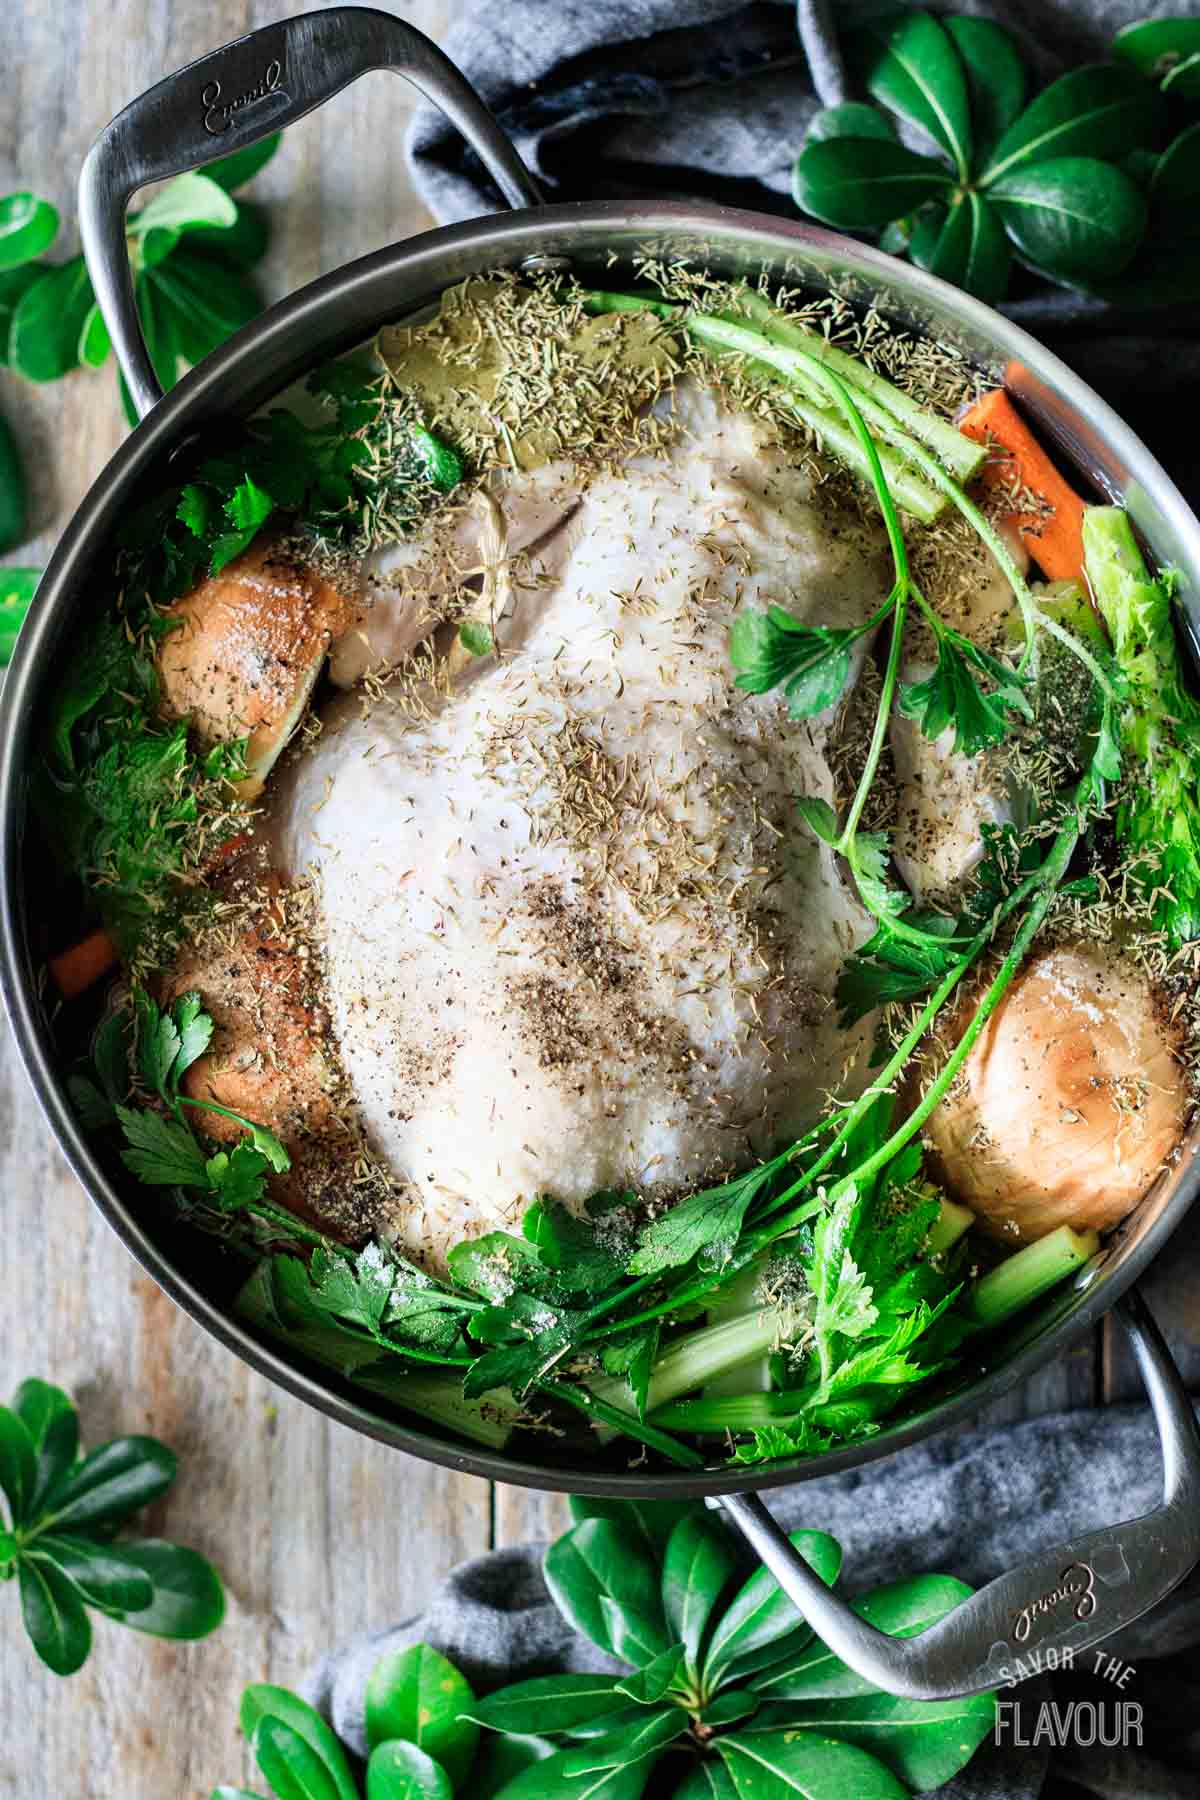 raw chicken in a pot of water with spices and veggies